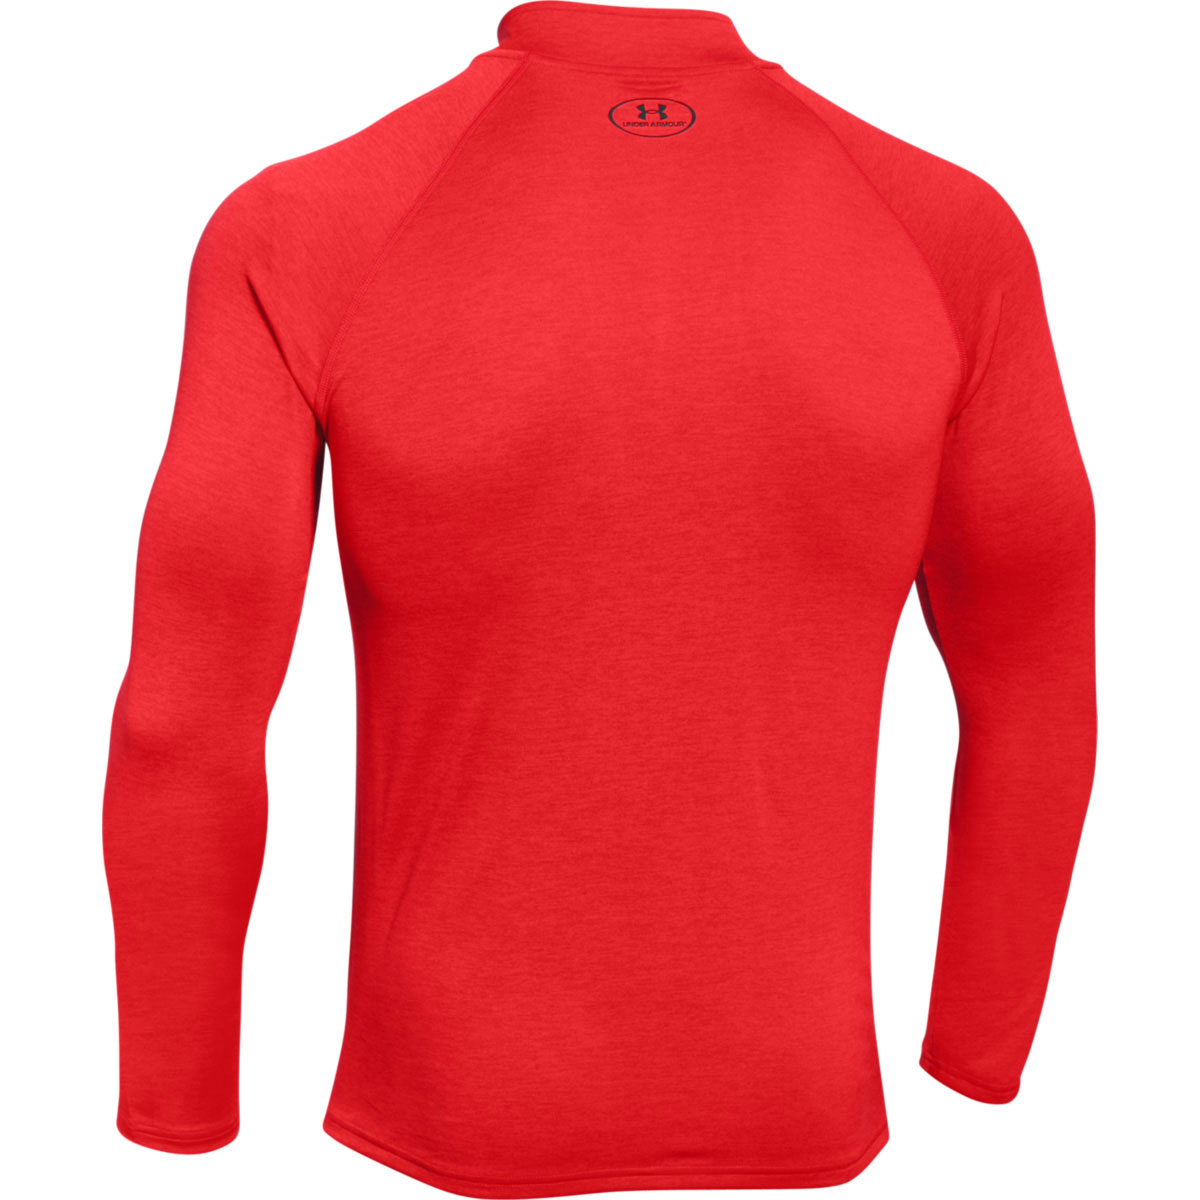 Under-Armour-Mens-UA-Tech-1-4-Zip-Long-Sleeve-Top-Workout-Layer-27-OFF-RRP thumbnail 74